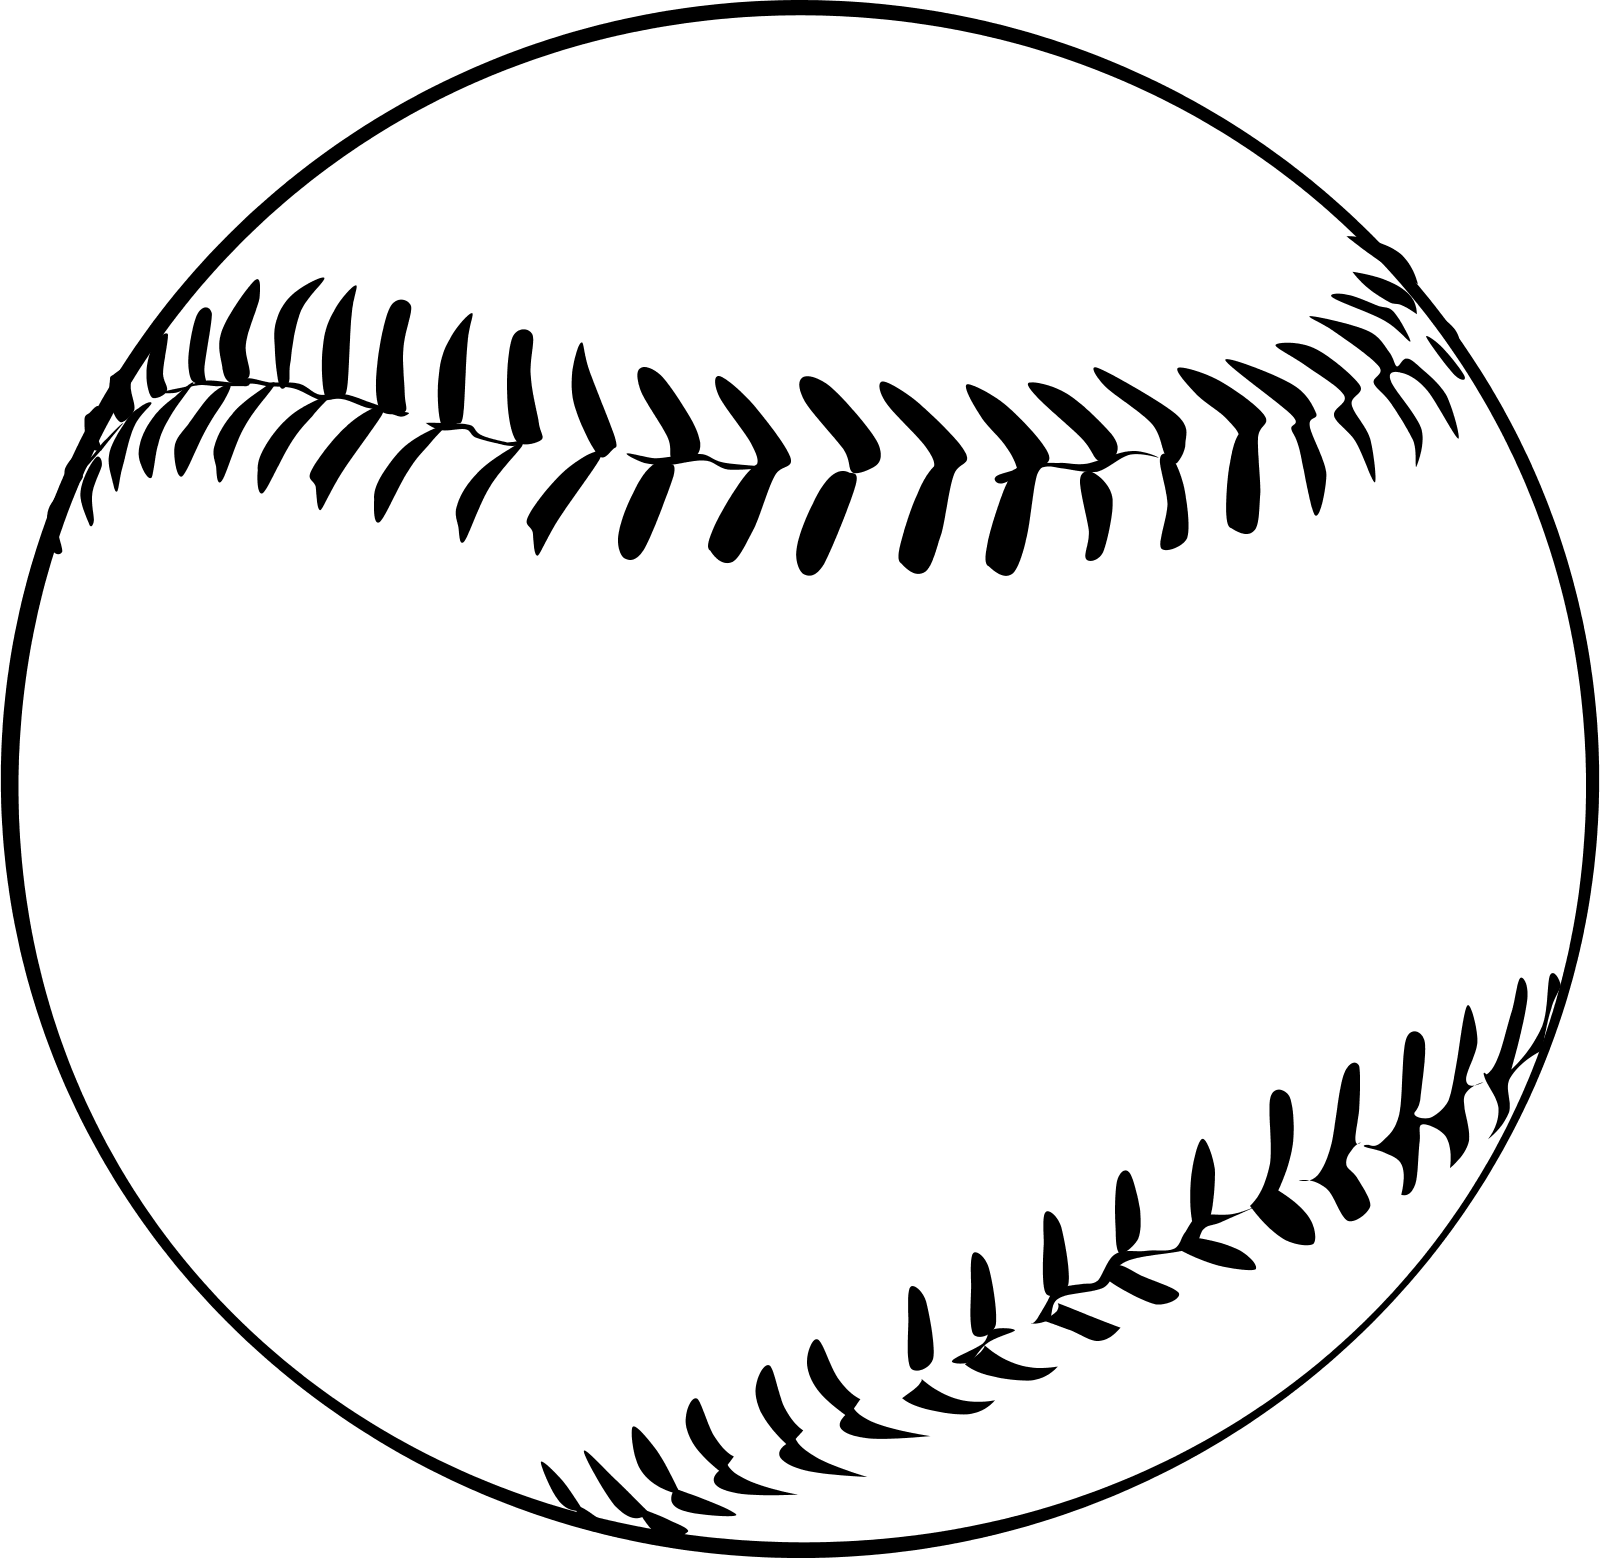 Baseball invitation clipart banner freeuse baseball-clipart-black-and-white-Baseball.png (1600×1558) BIG ... banner freeuse